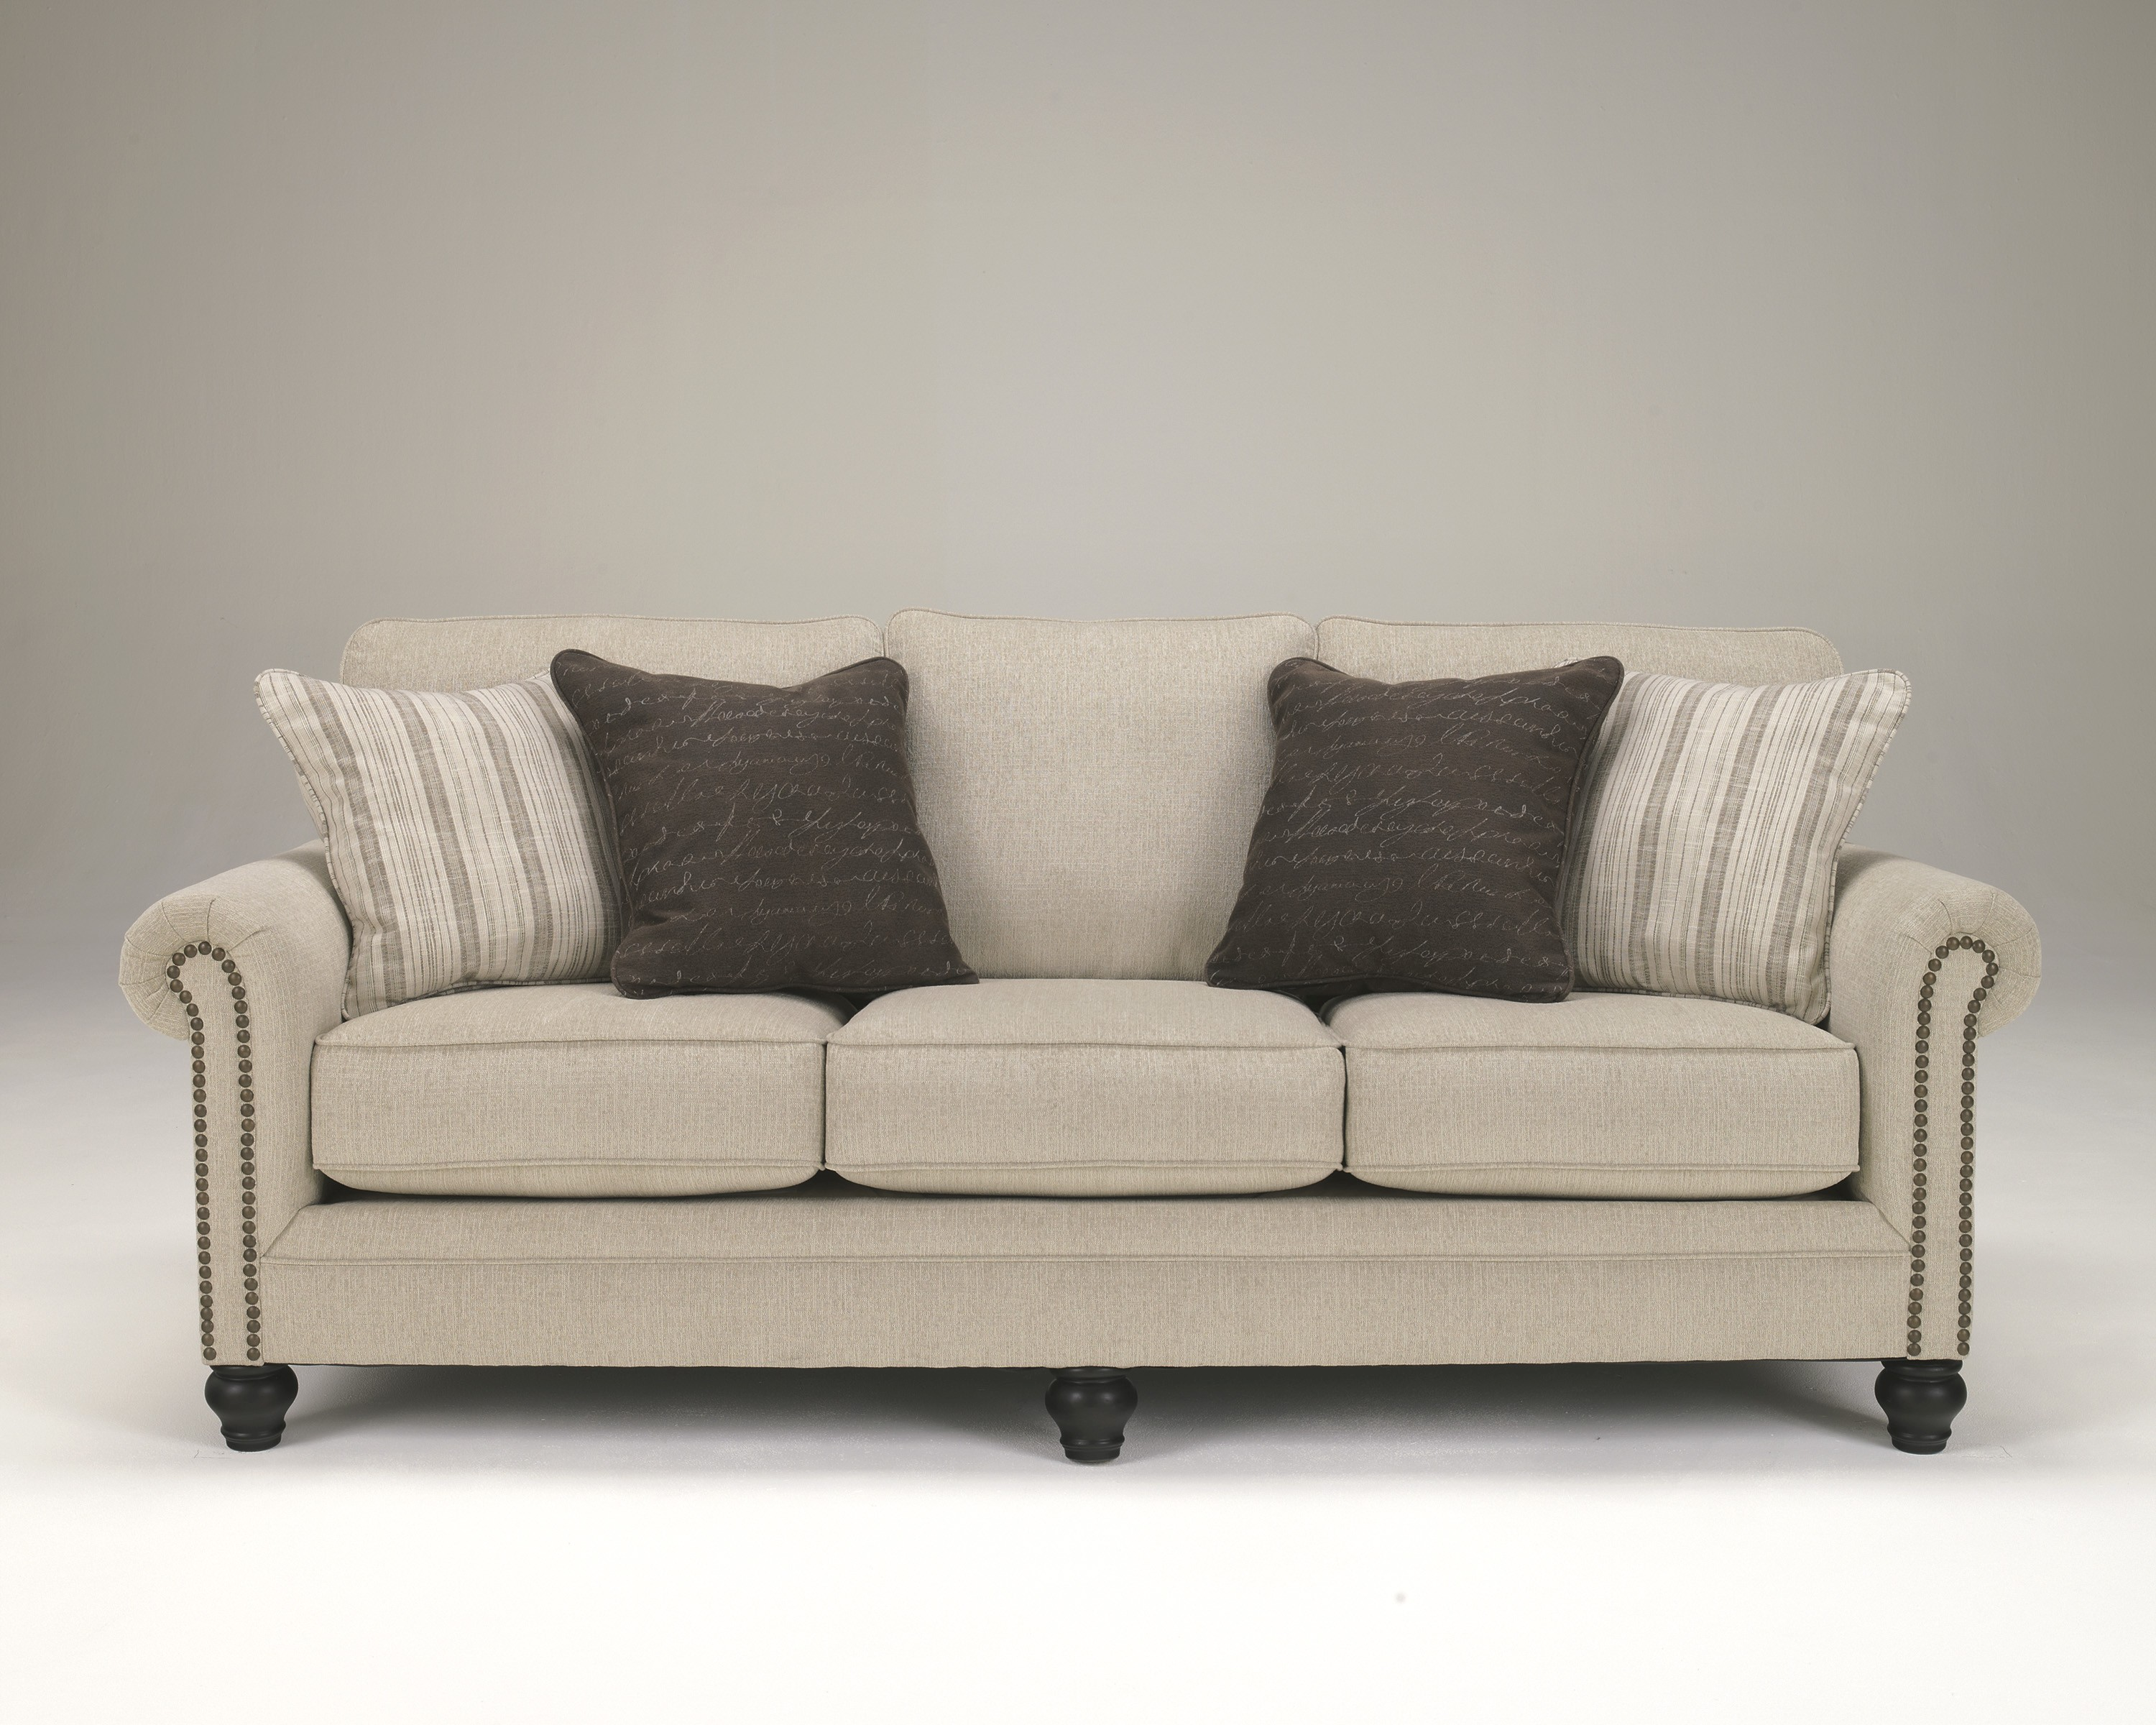 Ashley Sleeper sofa Elegant ashley Milari Linen Sleeper sofa Dream Rooms Furniture Picture